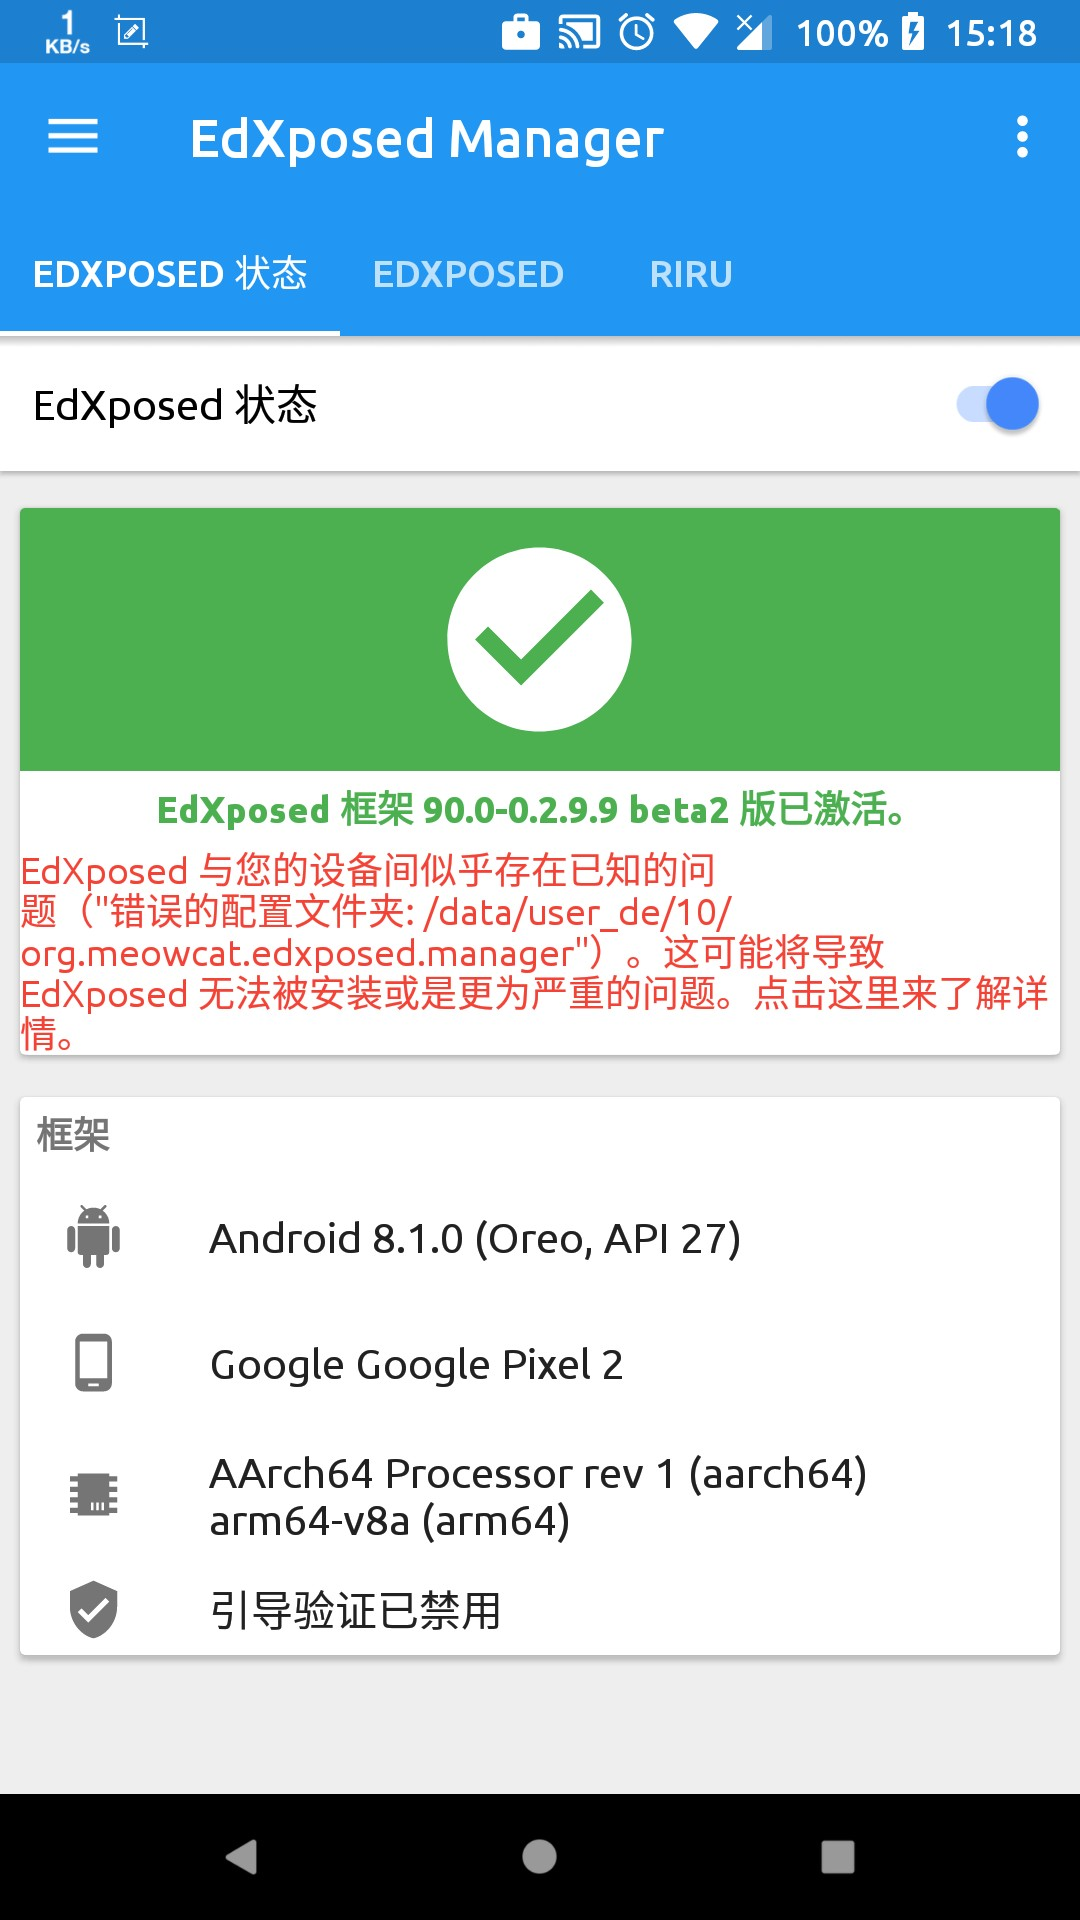 BUG] 多用户模式报错· Issue #117 · ElderDrivers/EdXposed · GitHub